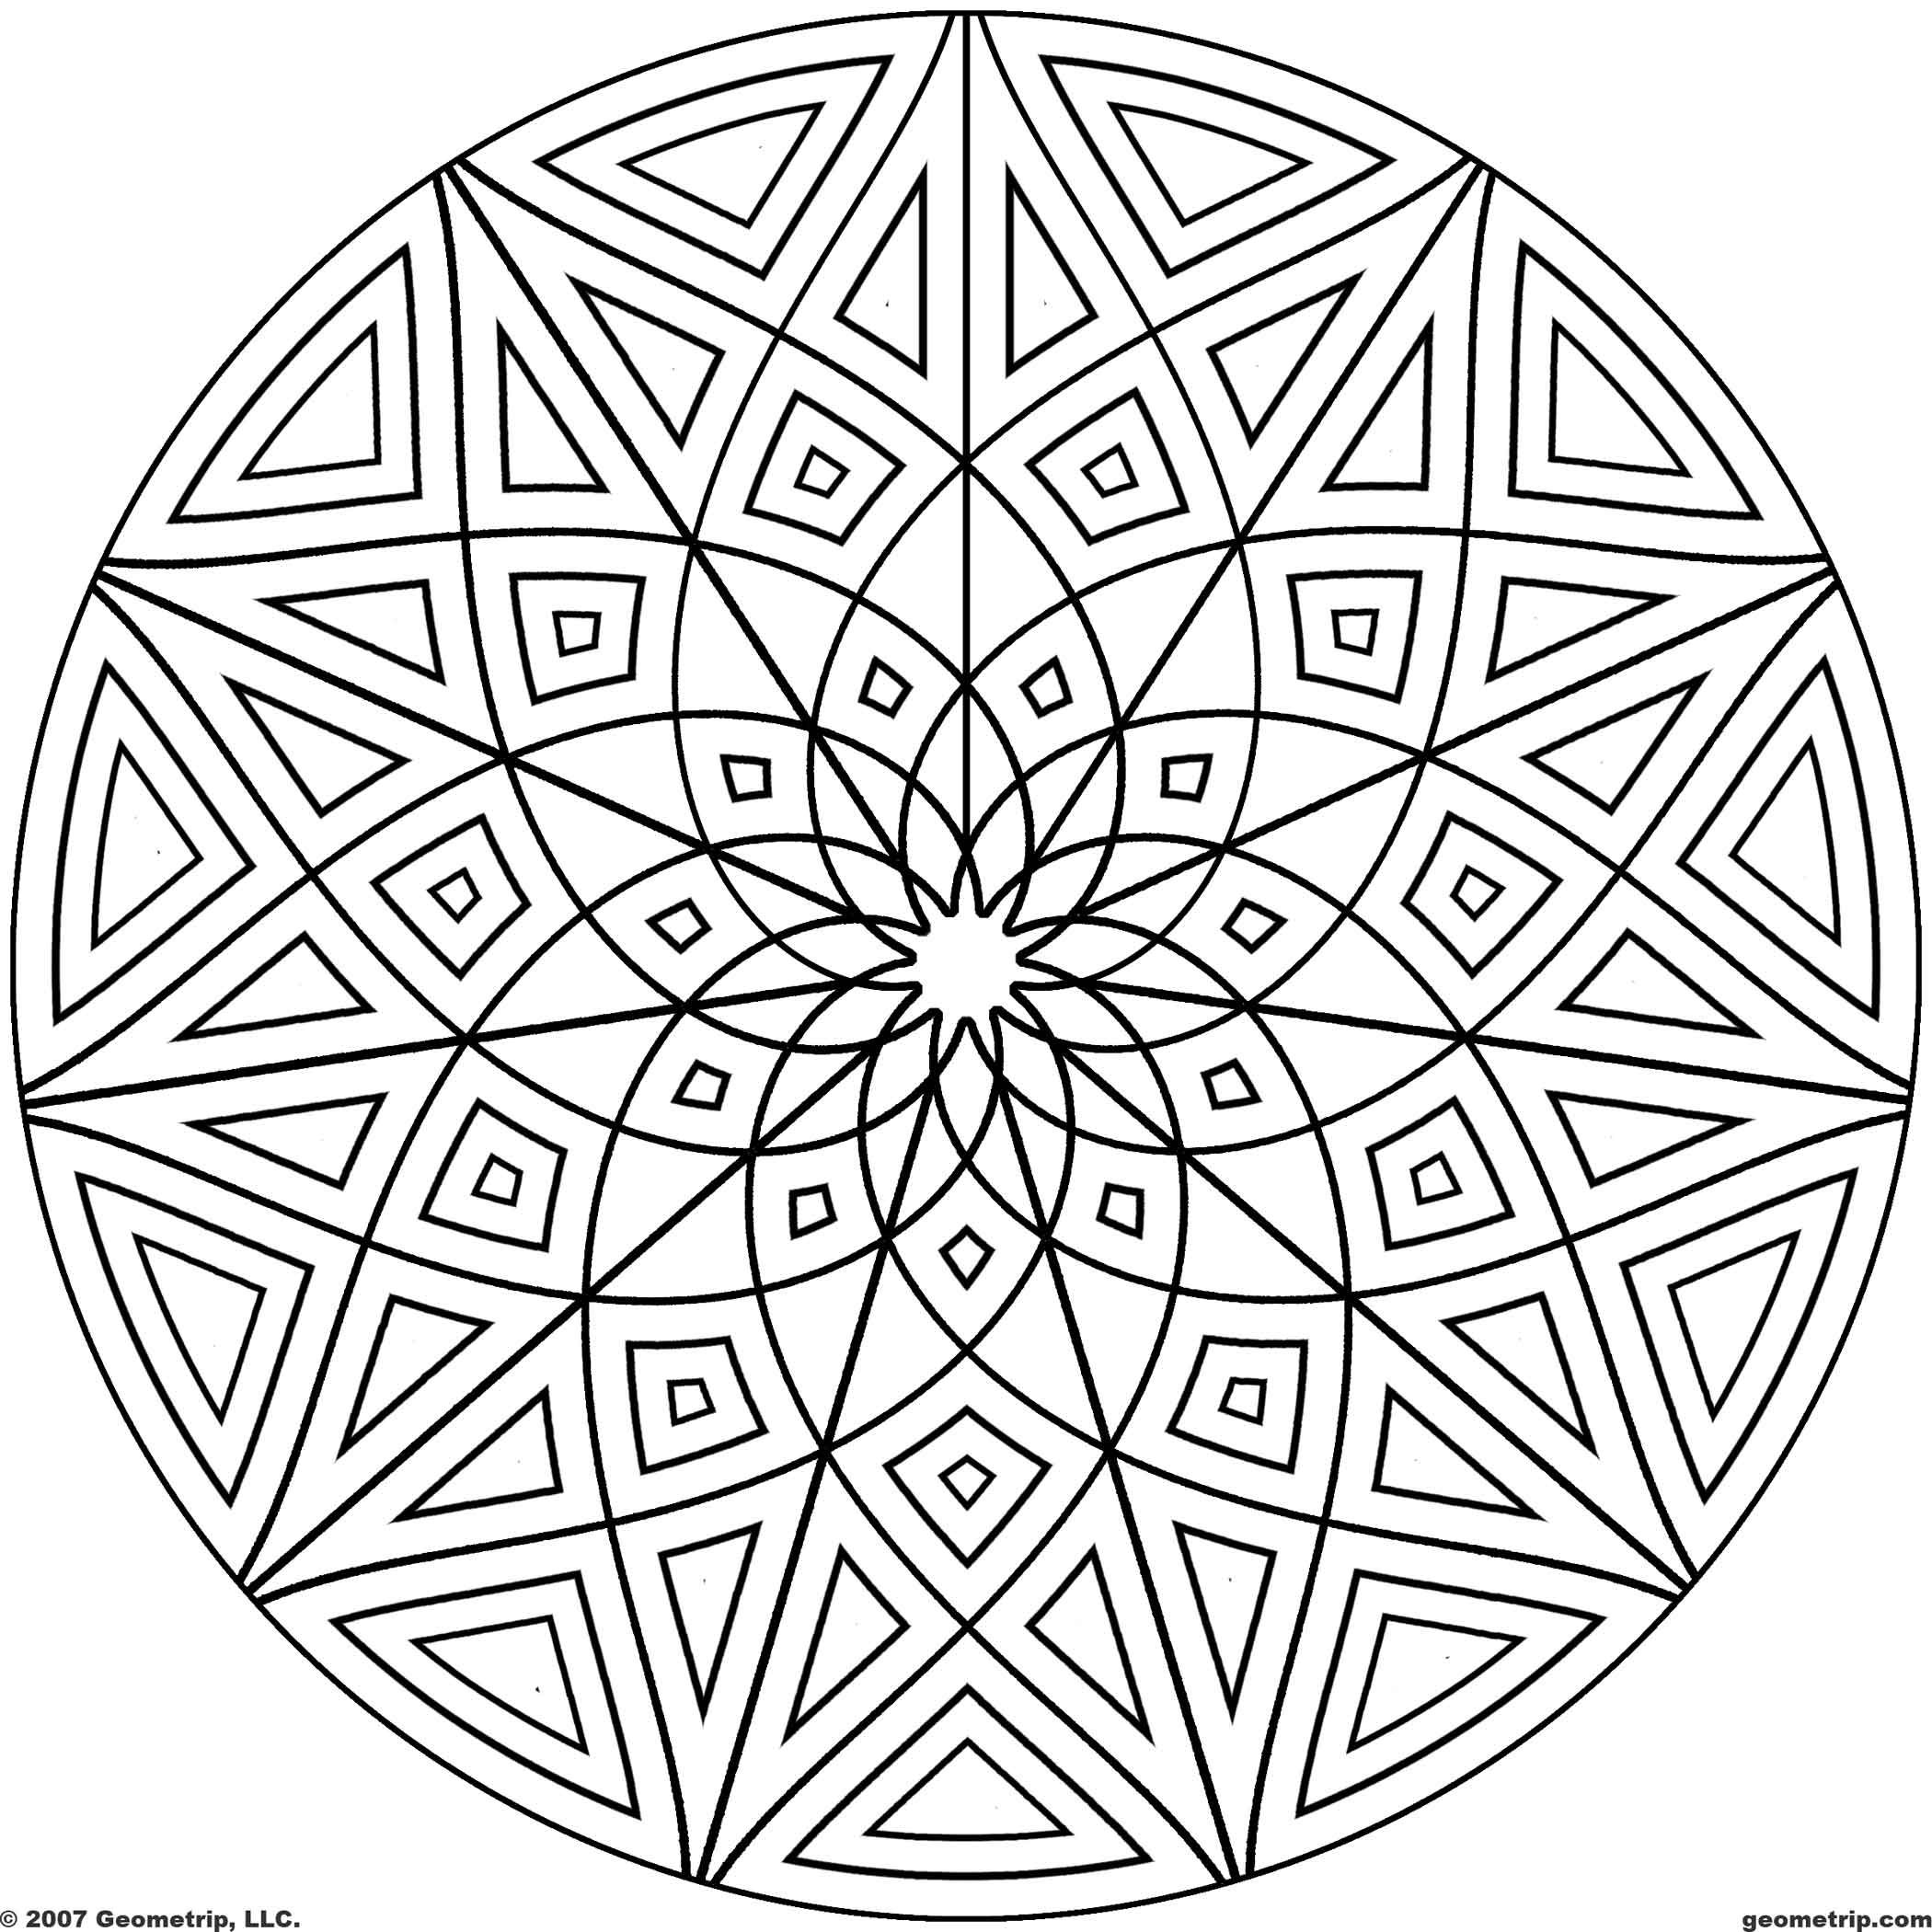 Kaleidoscope coloring pages geometrip com free geometric coloring designs circles